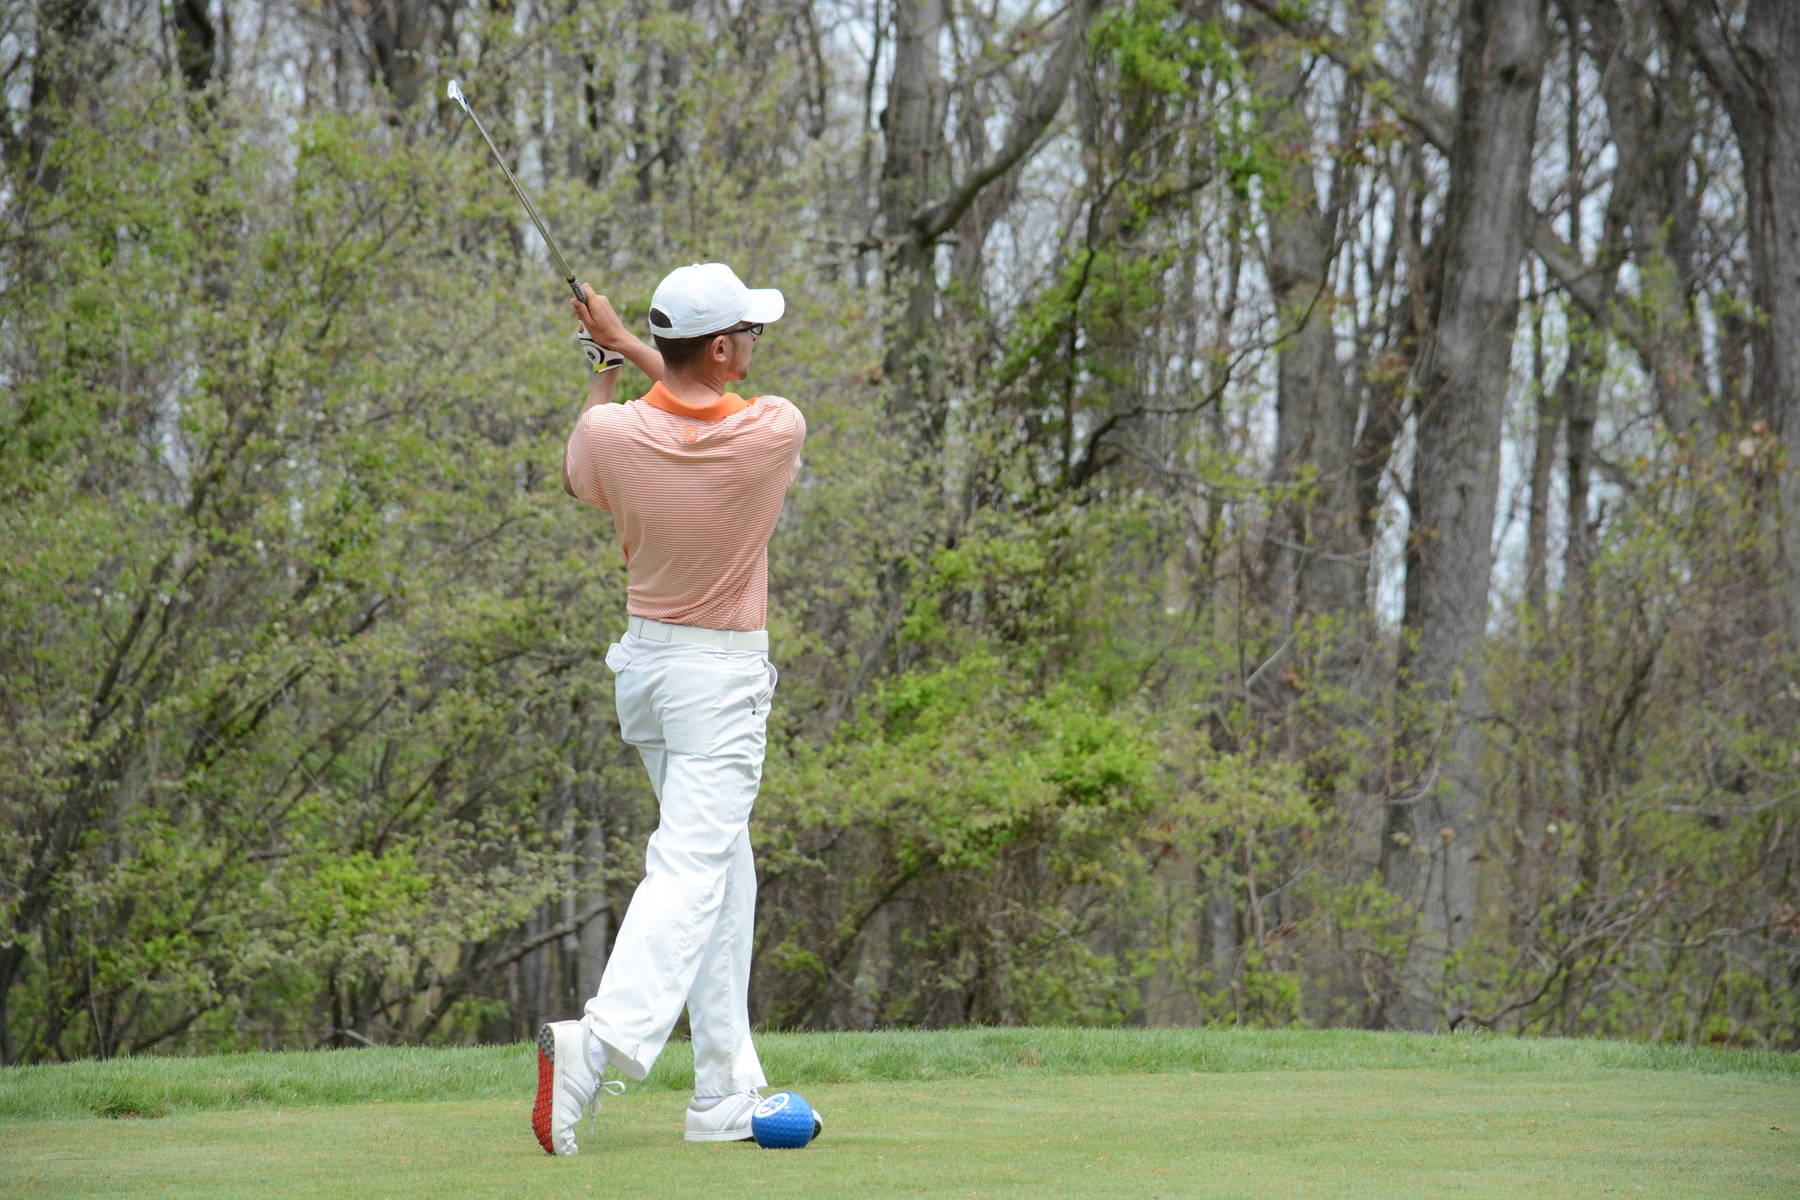 Findlay Surges to Fifth Place Finish